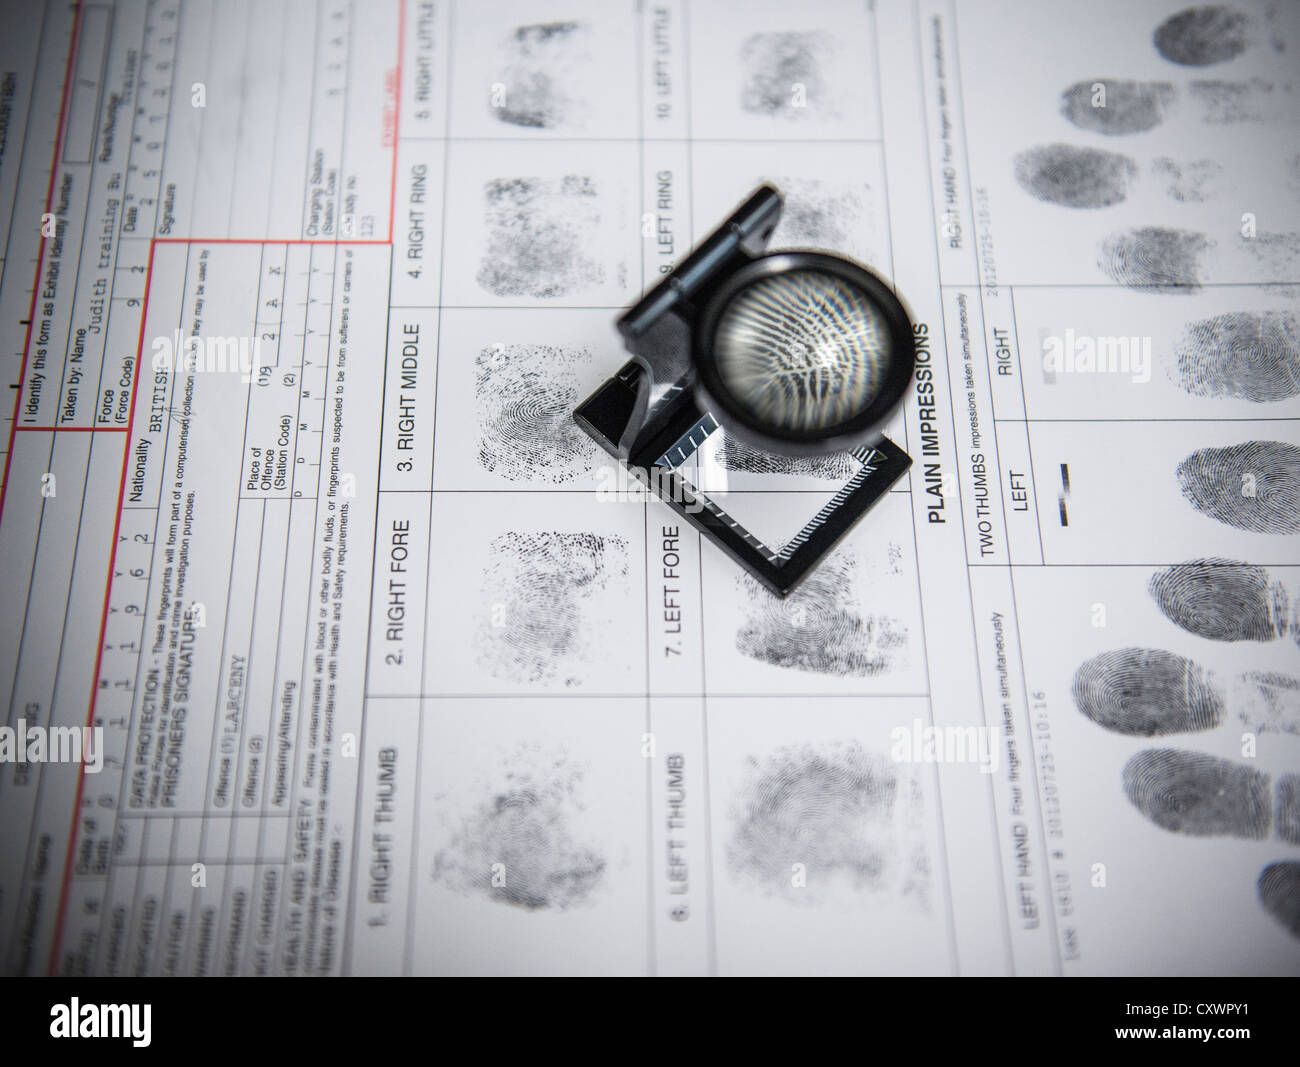 Loupe sur des empreintes digitales sur la forme d'arrestation Photo Stock